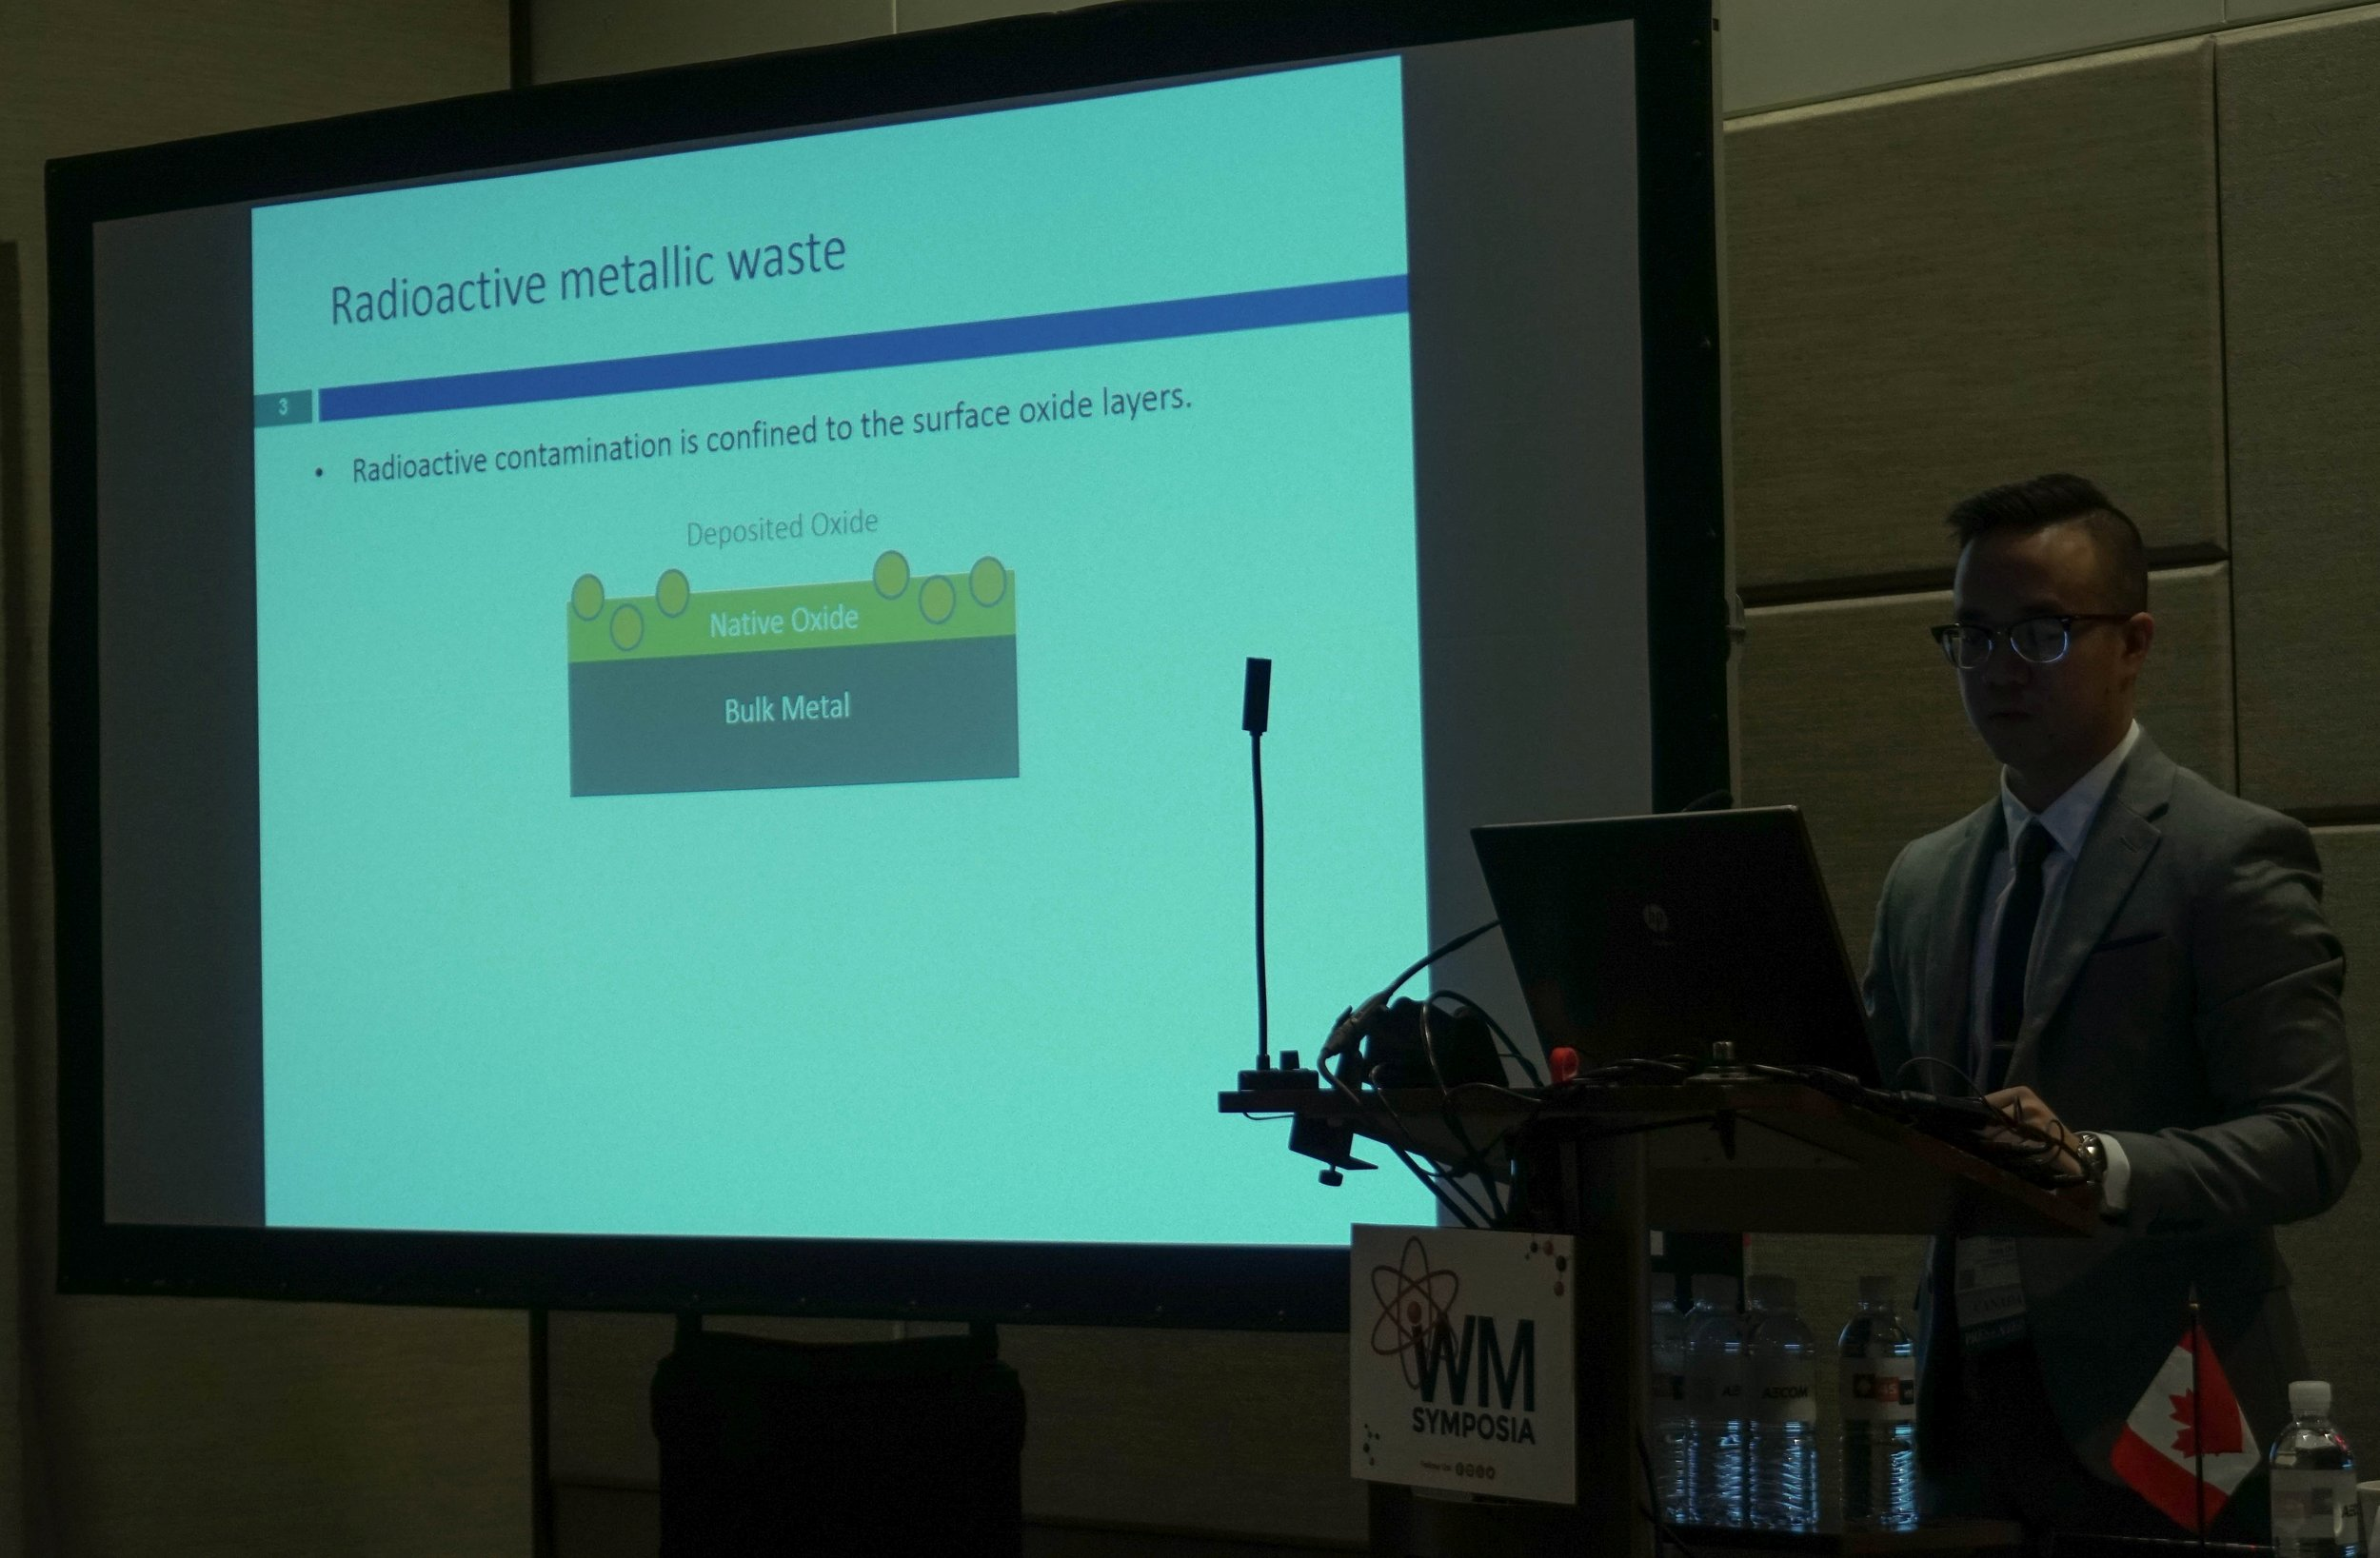 Thao Do presenting his work at the Waste Management Conference, March 2019.